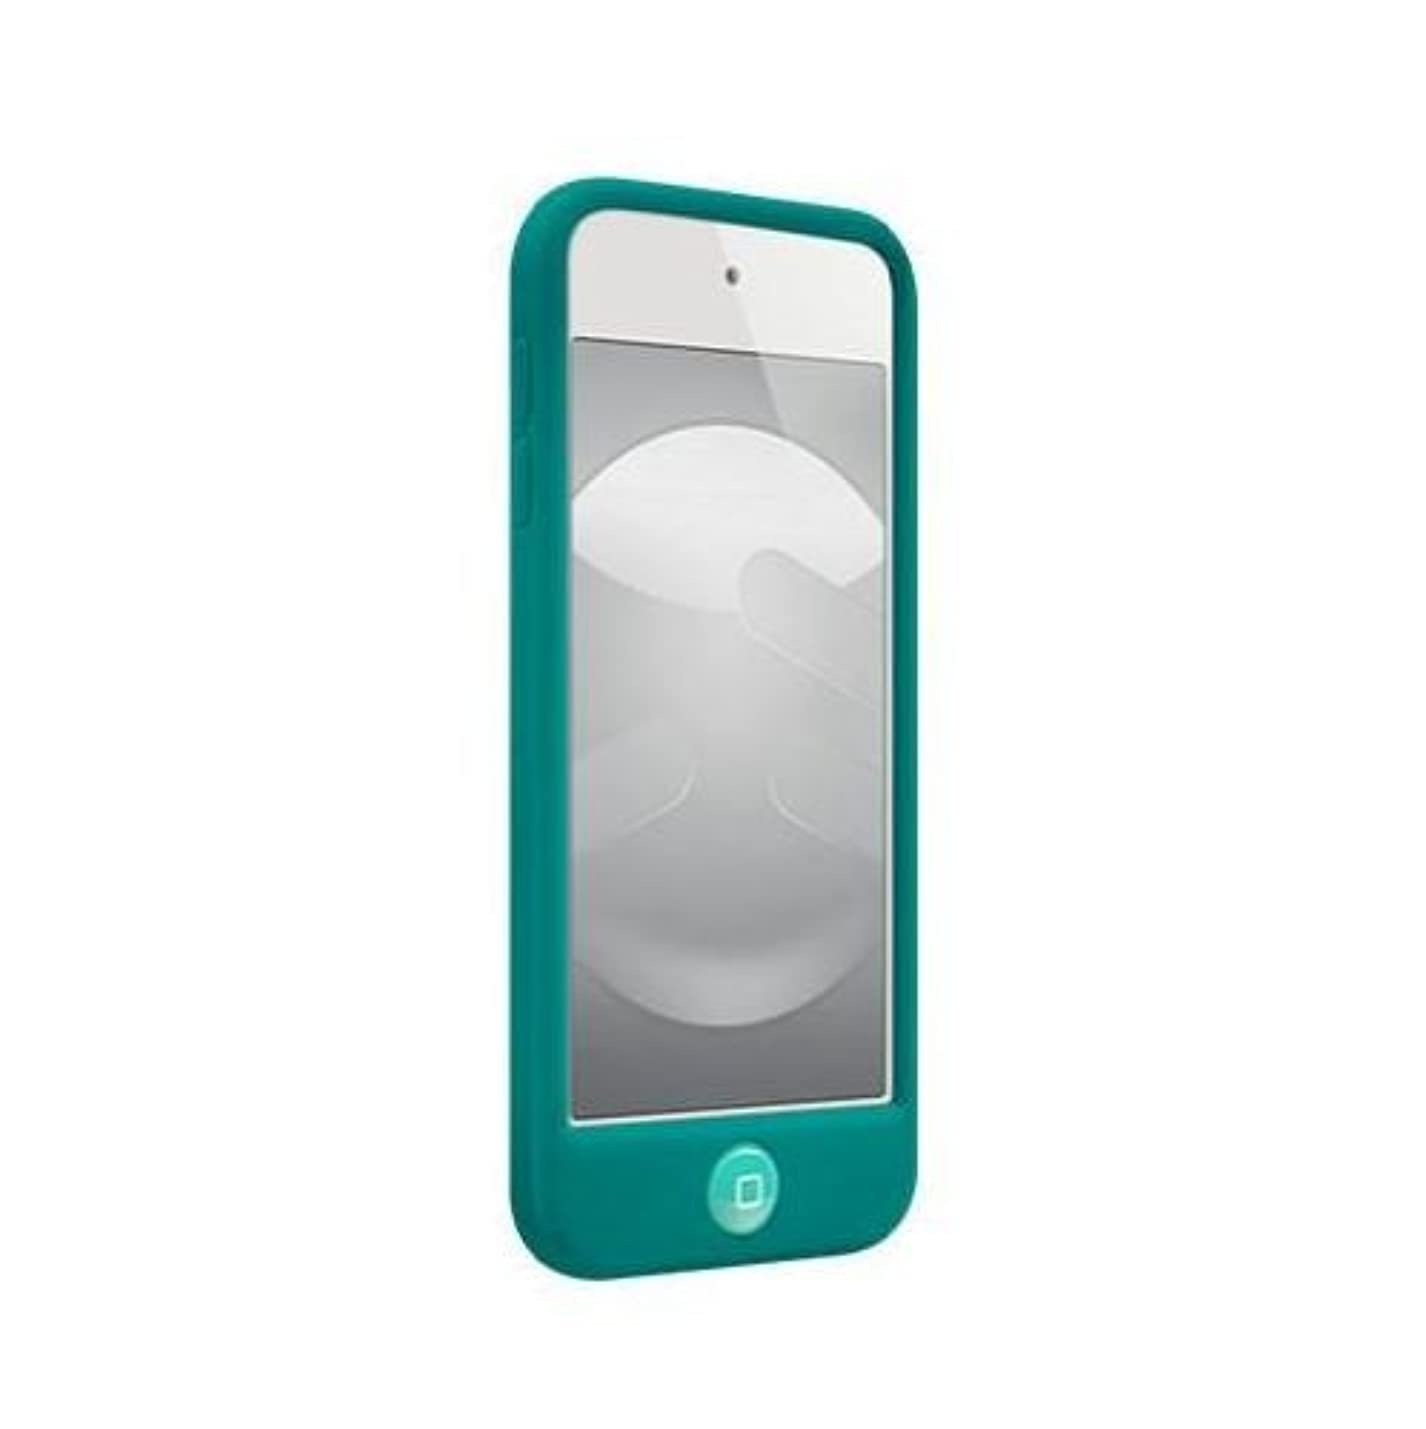 羊のキャンプくびれたSwitchEasy iPod touch 5G用ケース Colors for iPod touch 5G Turquoise ターコイズ SW-COLT5-TU